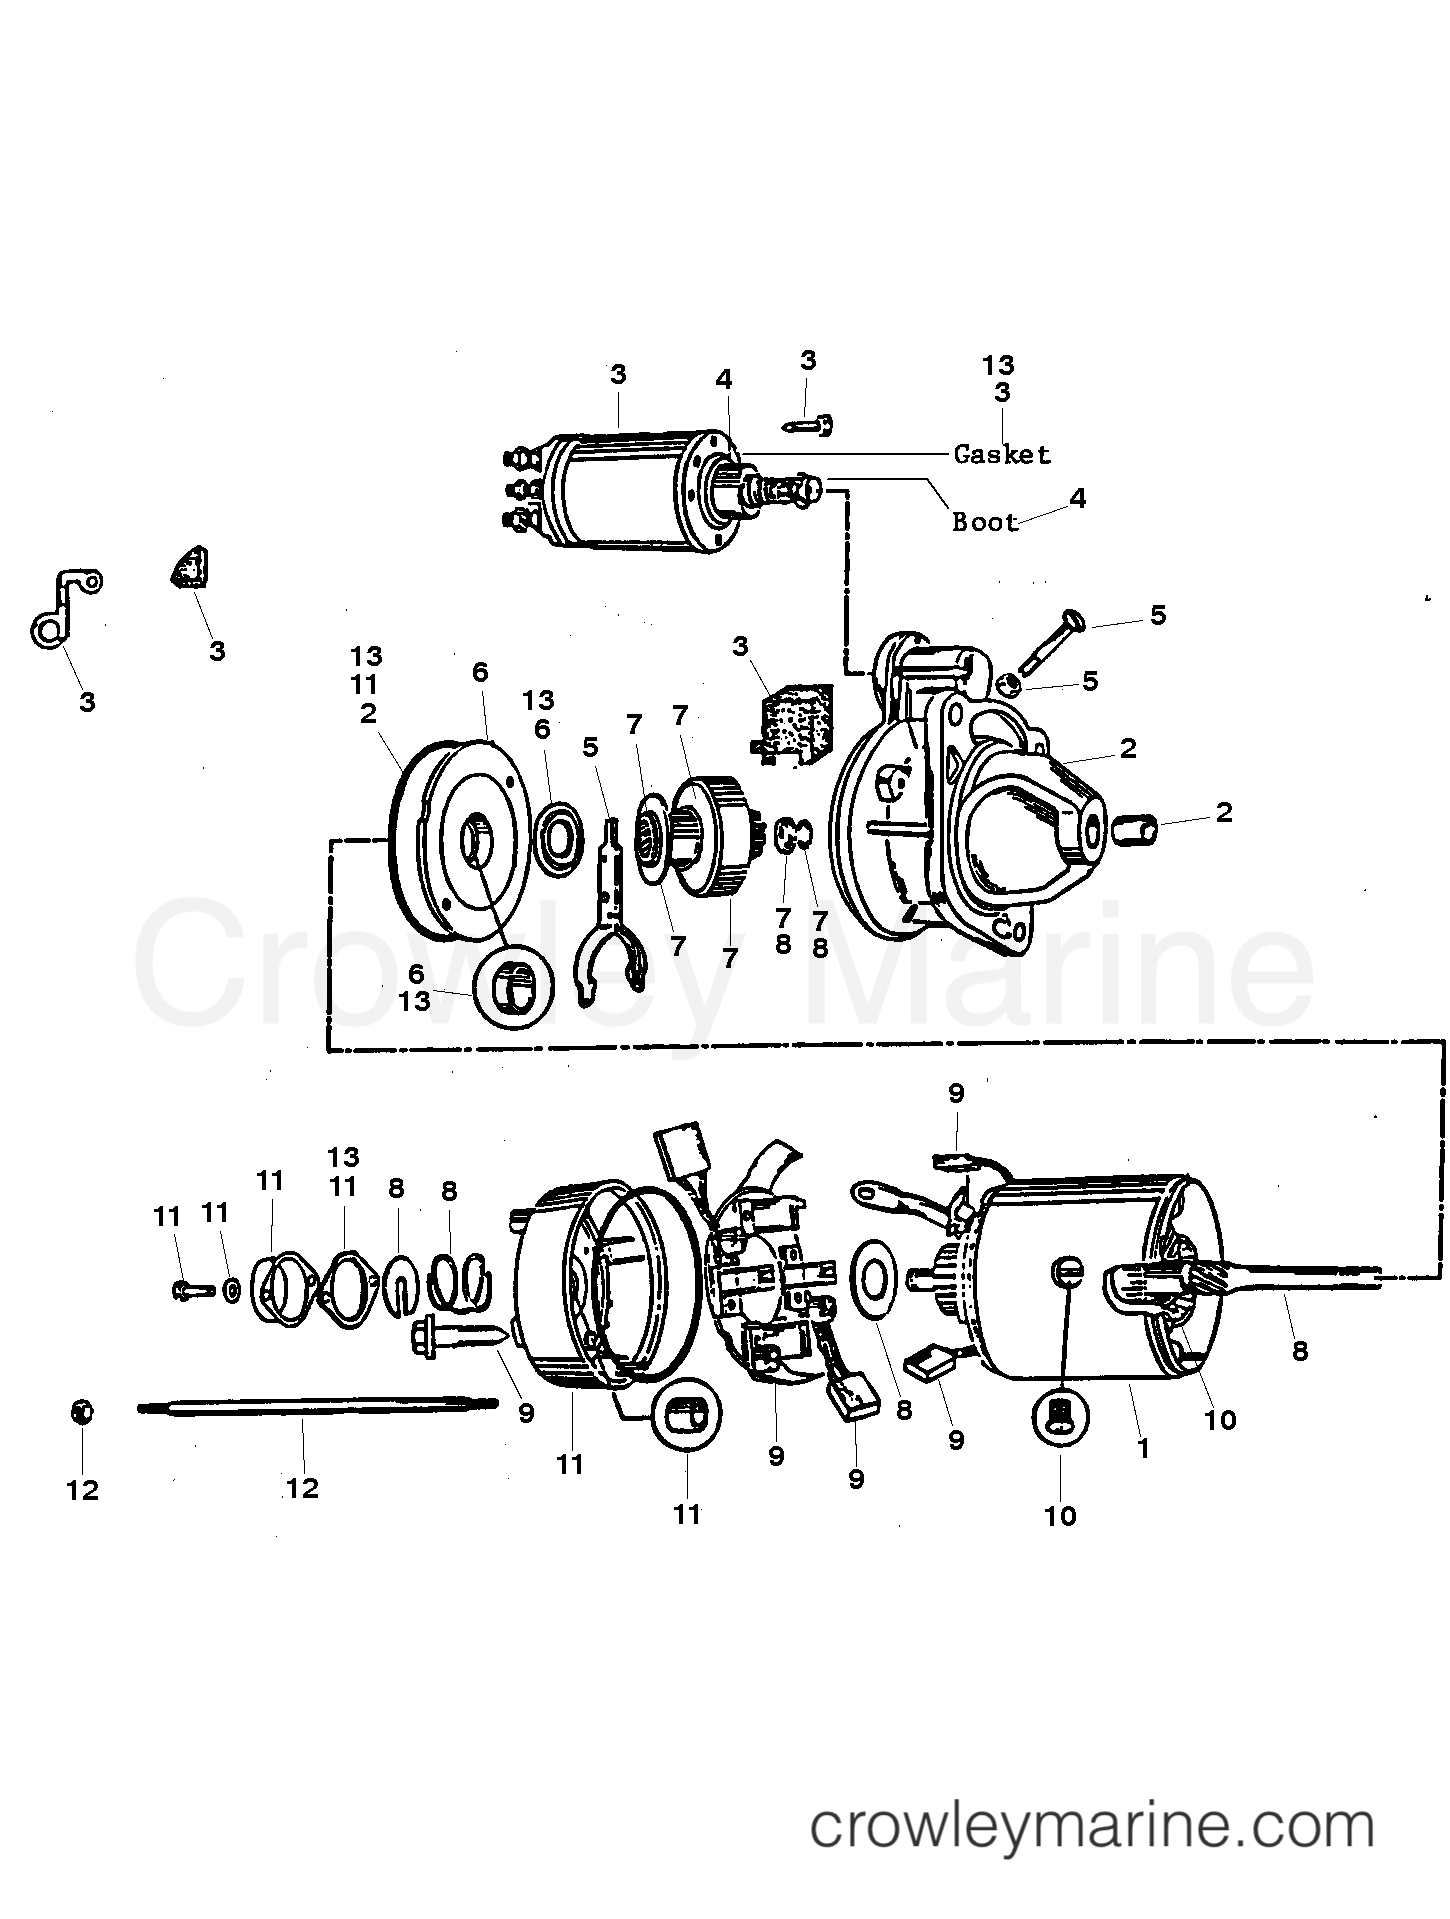 hight resolution of 1992 mercruiser race sterndrive 800sc 4800260eh starter assembly 50 808011a1 section